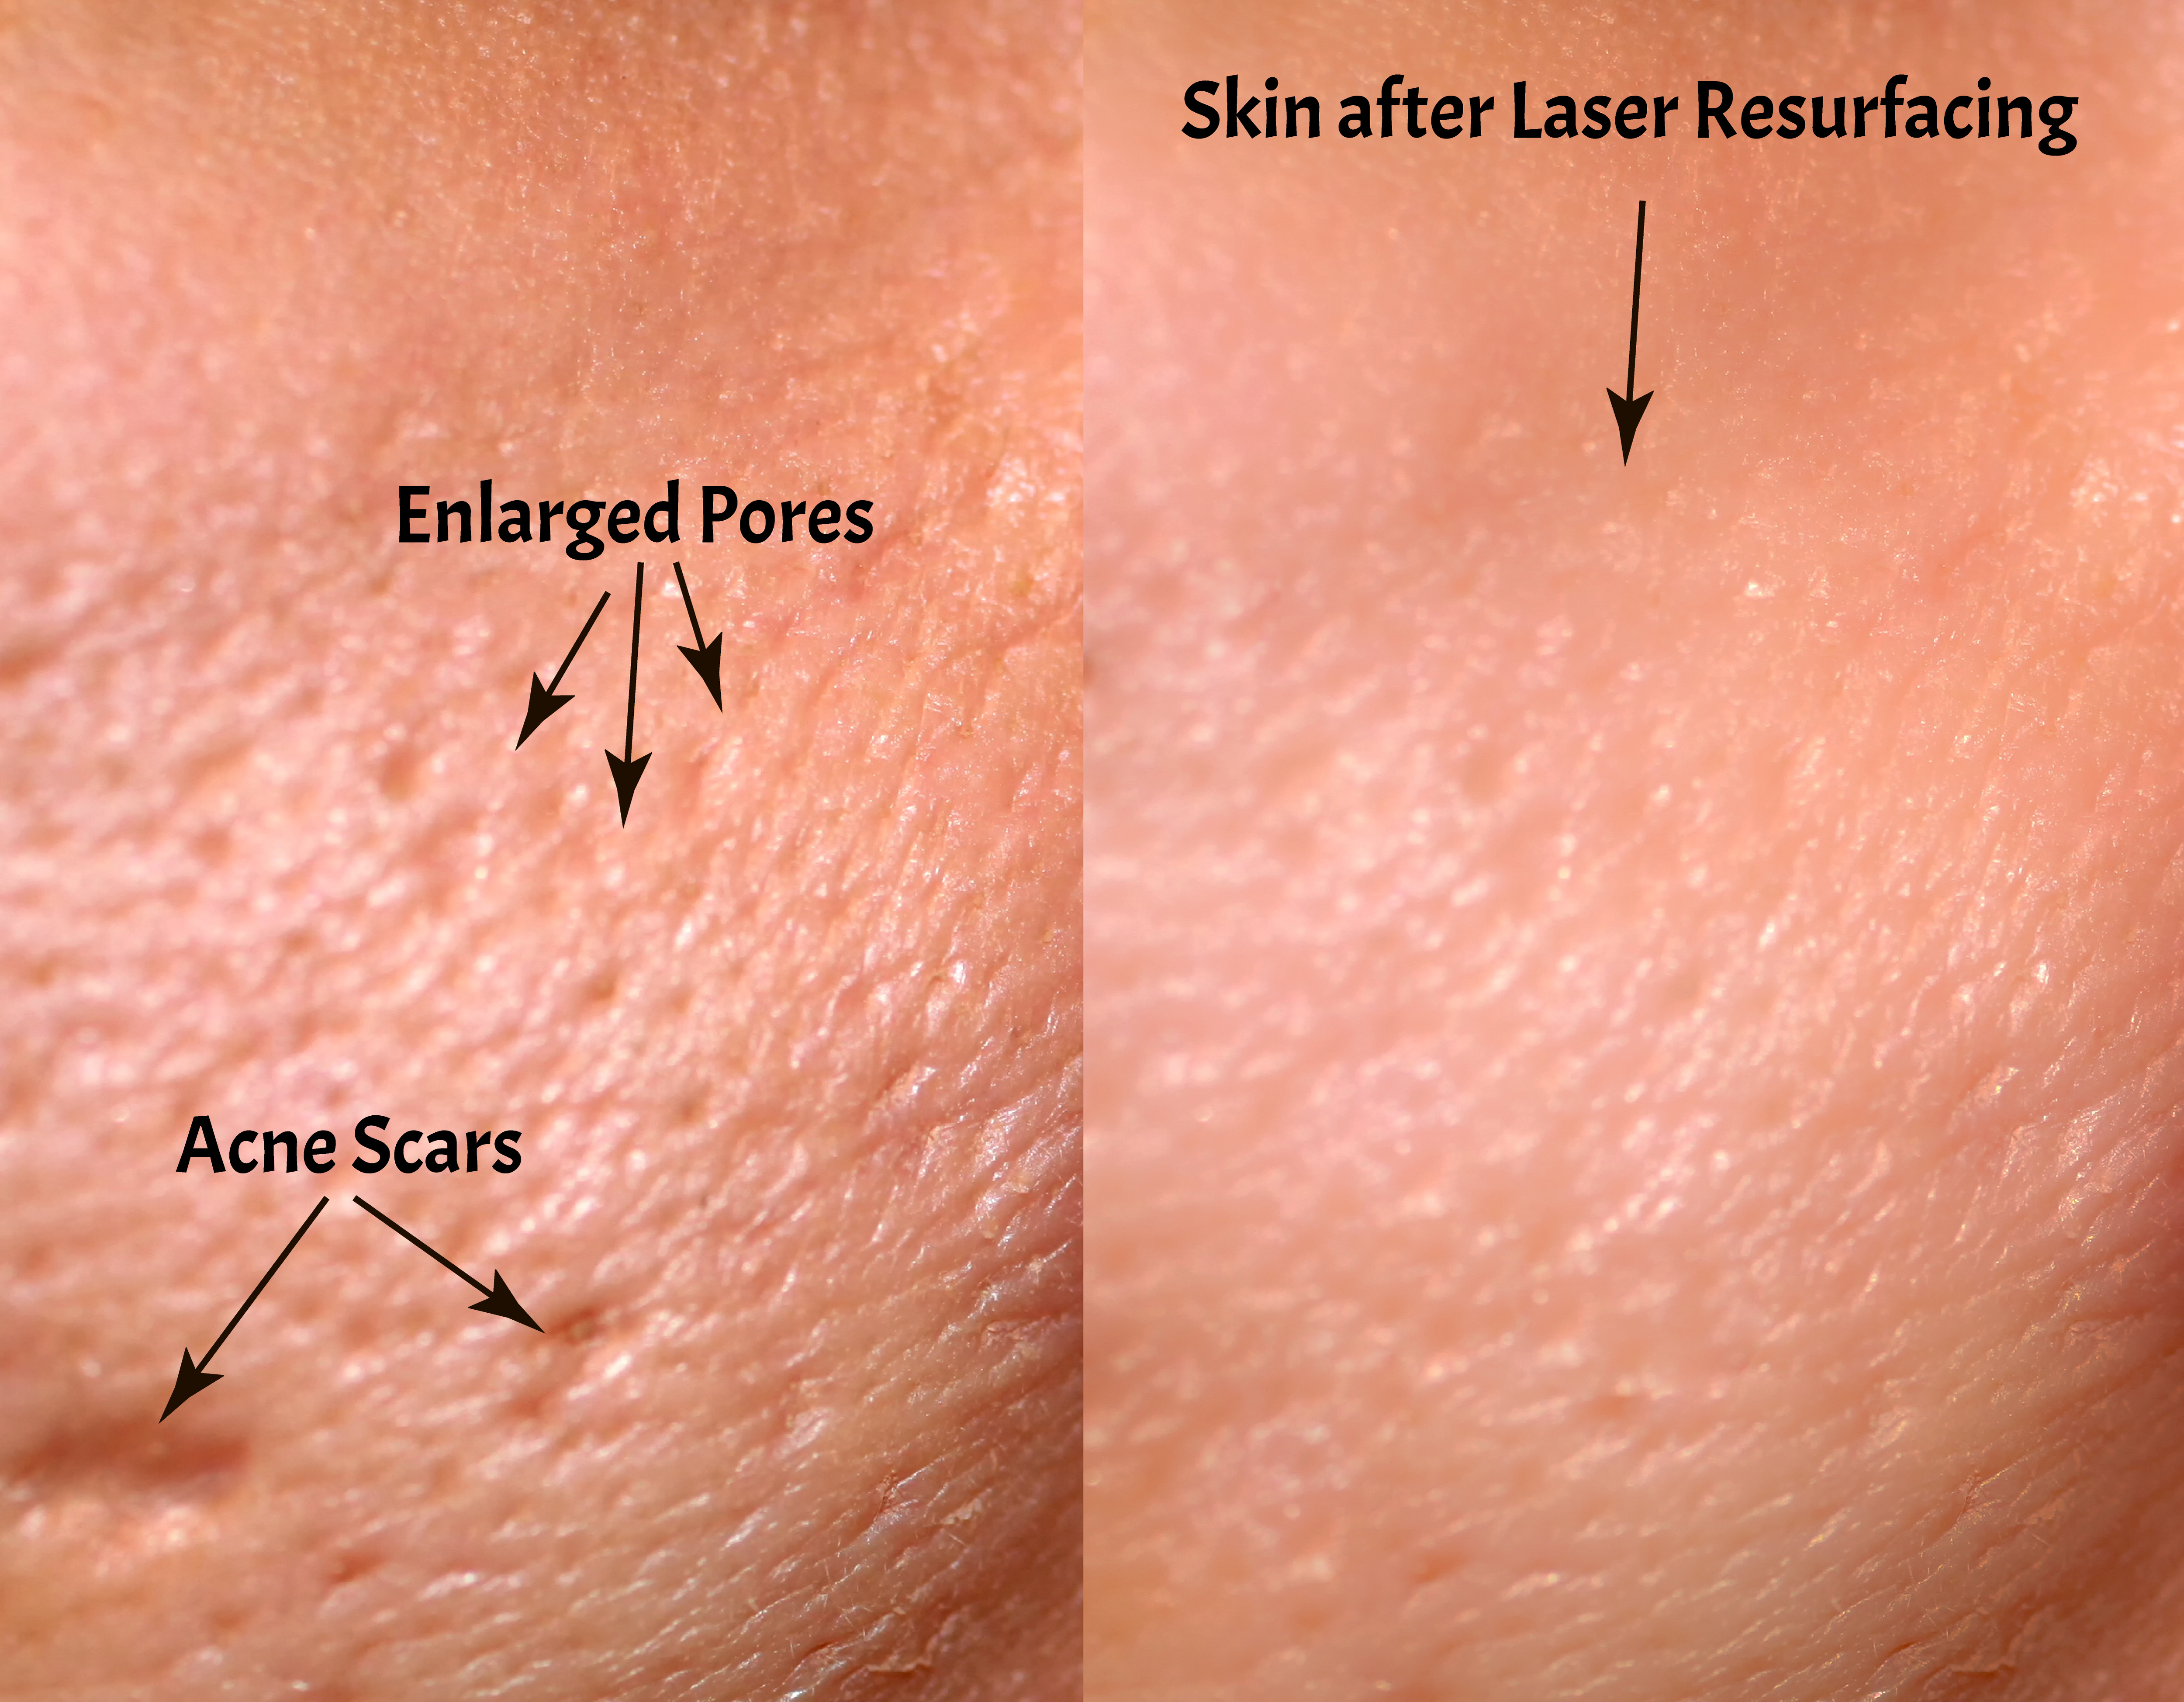 Comparison of skin before and after laser resurfacing